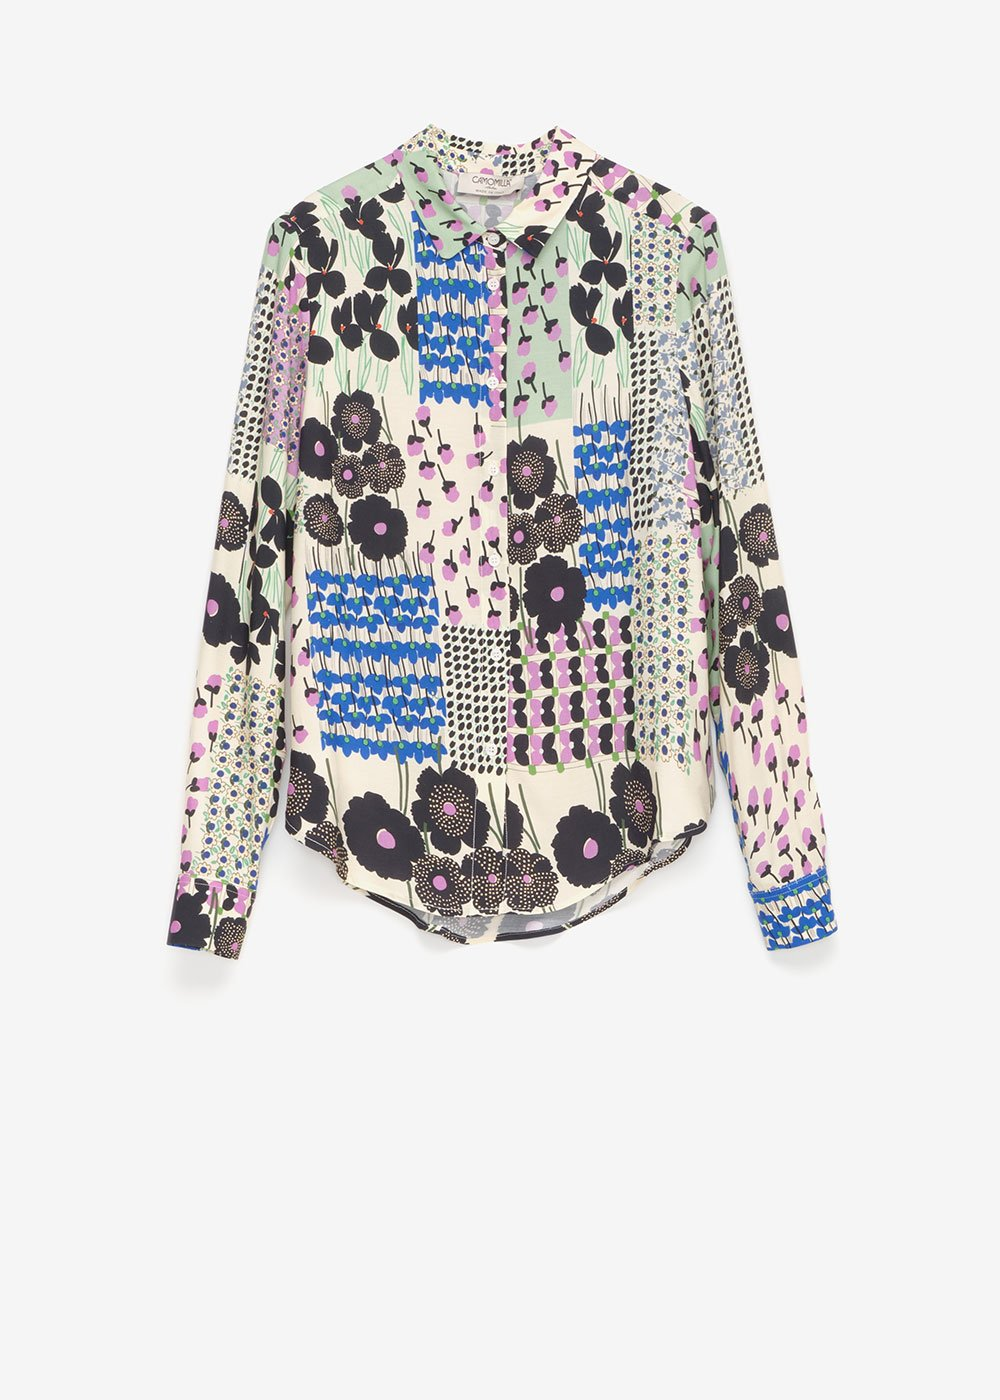 Cristie shirt with floral pattern - Cream  /  Black Multi - Woman